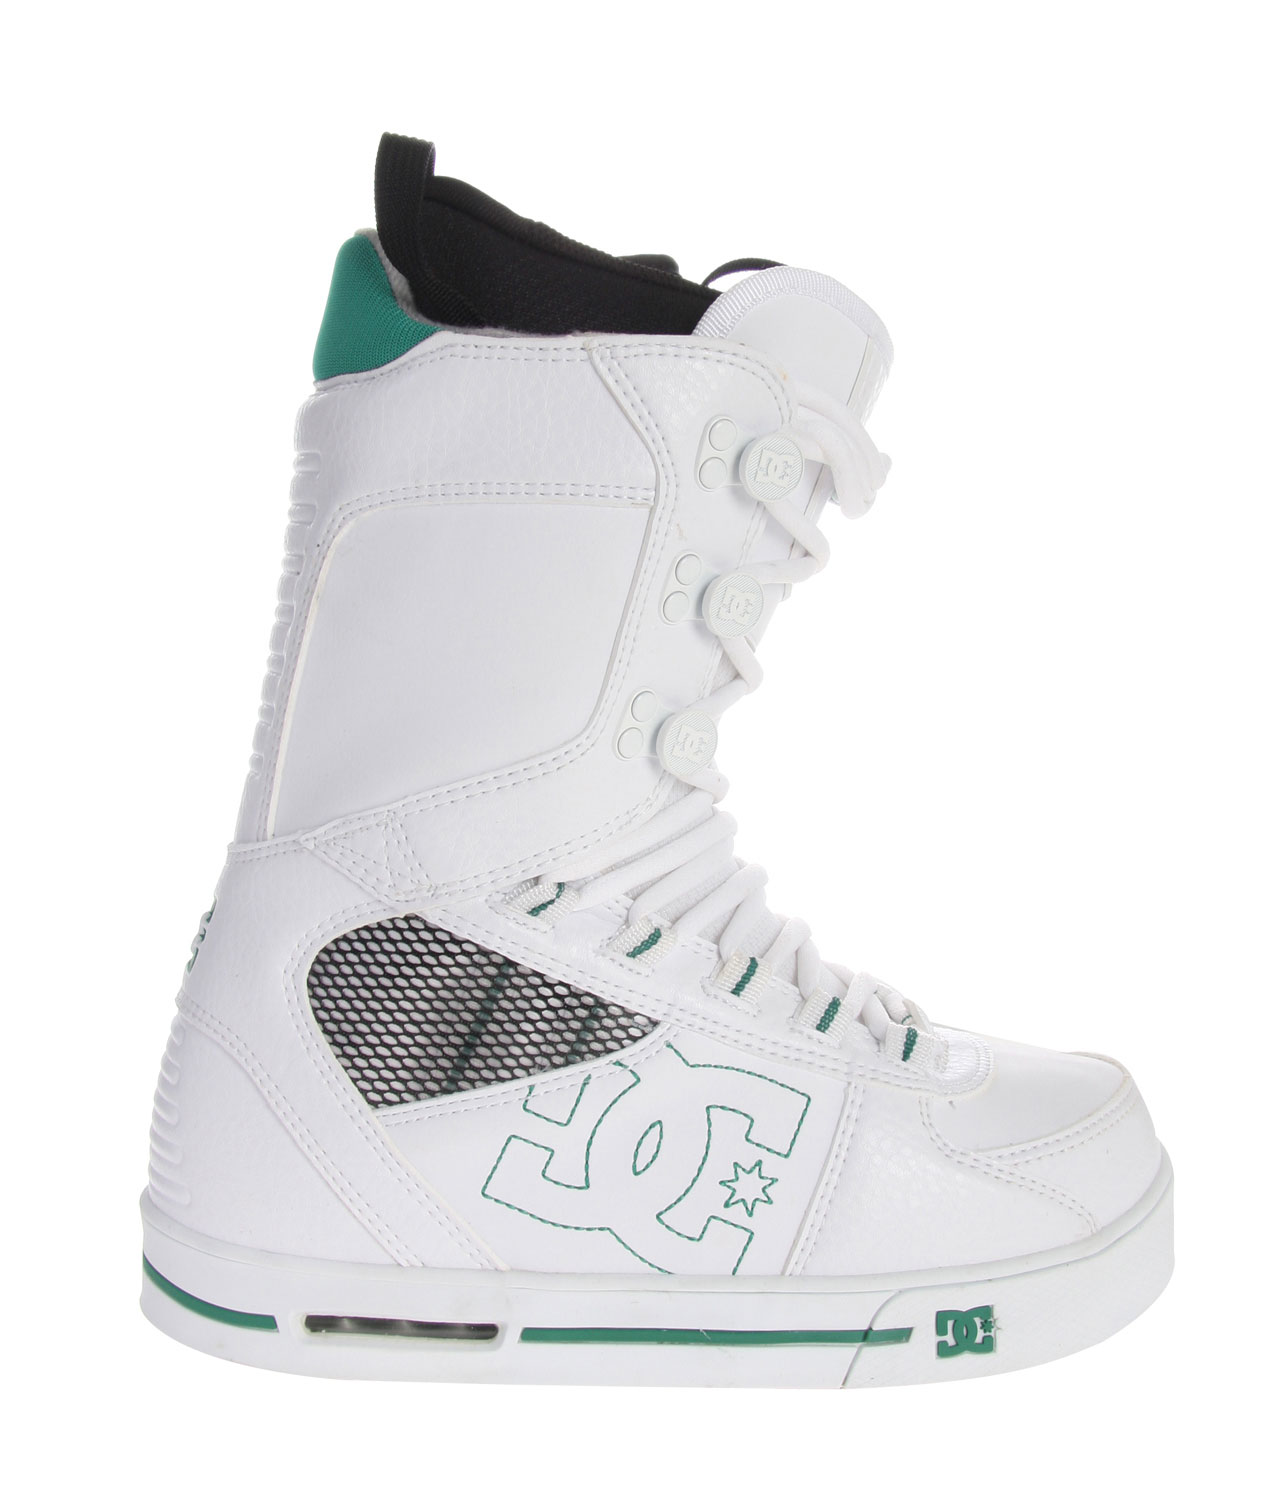 "Snowboard The Park boot caters directly to the unique need of those who hit the park on the regular. It also brings DC's innovative Performance Wrap Cup Sole, originally created for the skate shoe line, but plenty of cushion thanks in part to a visible airbag in the heel.Key Features of the DC Park Youth Snowboard Boots: Water Resistant Synthetic Leather Upper & PU Coated Mesh Traditional Lace Ergonomically Engineered 3D Tongue Articulated Upper Cuffs Patented Performance Wrap Cup Sole with Air Multi Tone Bottom with DC's Trademark ""Pill"" Pattern Flex: 6 Functional Sole Design - $119.95"